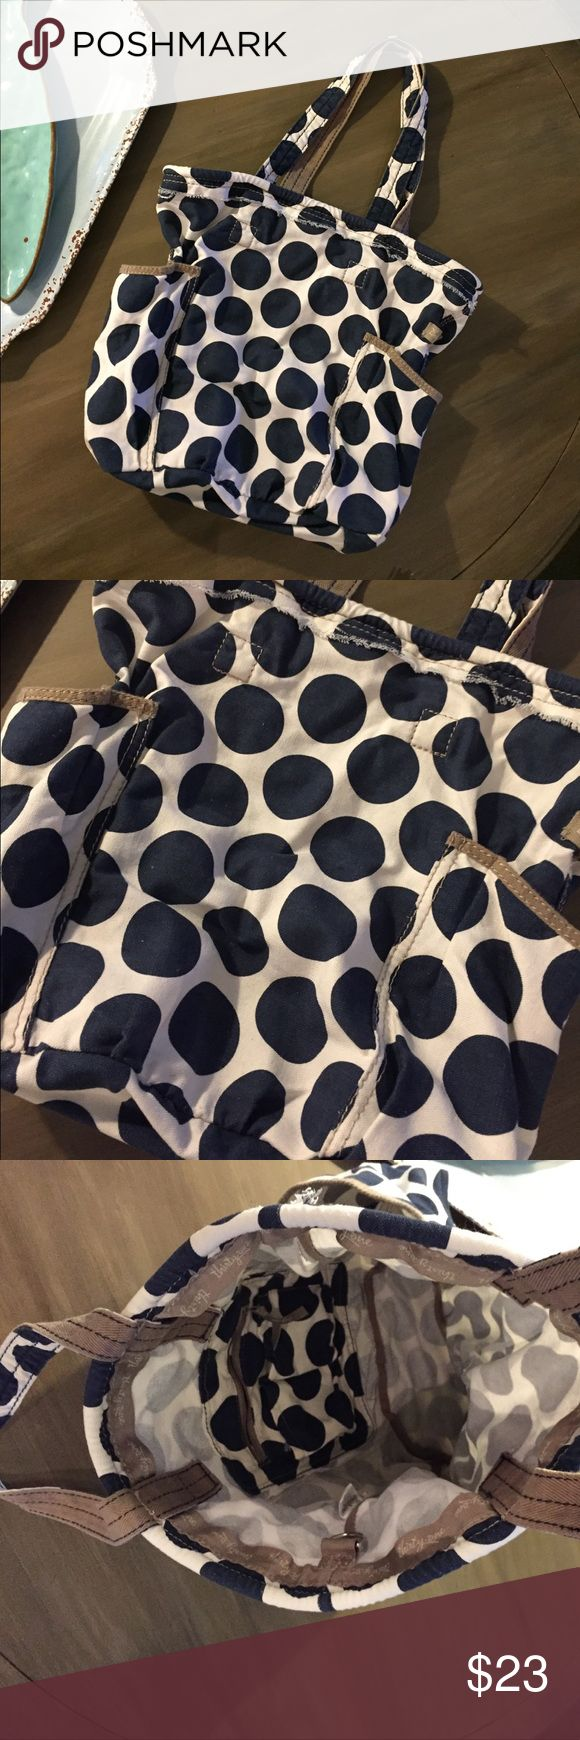 """Thirty-One Gifts Navy Mod Dot Metro Retro Tote Slouchy tote from Thirty-One Gifts. The metro retro is a big open tote with two exterior side pockets for easy access to water, sunglasses, phone/keys etc. Inside is a large open compartment with a side pocket that has a zip enclosure & 2 pockets for phone/glasses. 17"""" wide x 14"""" tall, shoulder drop 9"""". Very gently used with only a few small marks near bottom - see picture where I'm pointing - pretty minor. Thirty-One Gifts Bags Totes"""